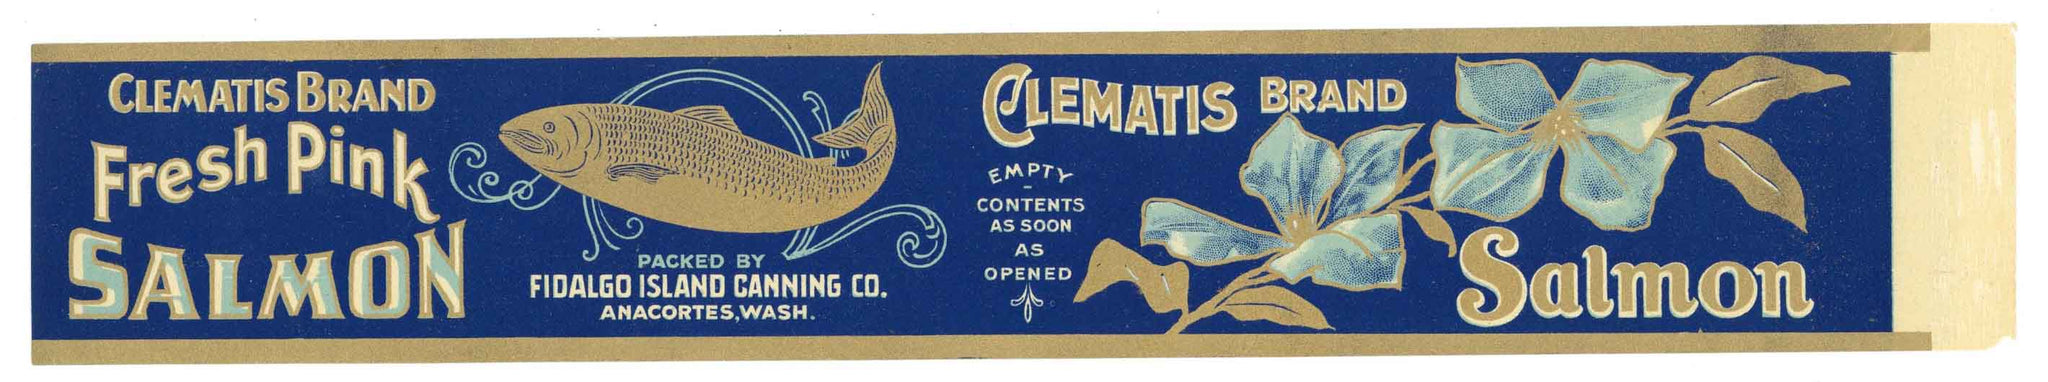 Clematis Brand Vintage Salmon Can Label, large flat